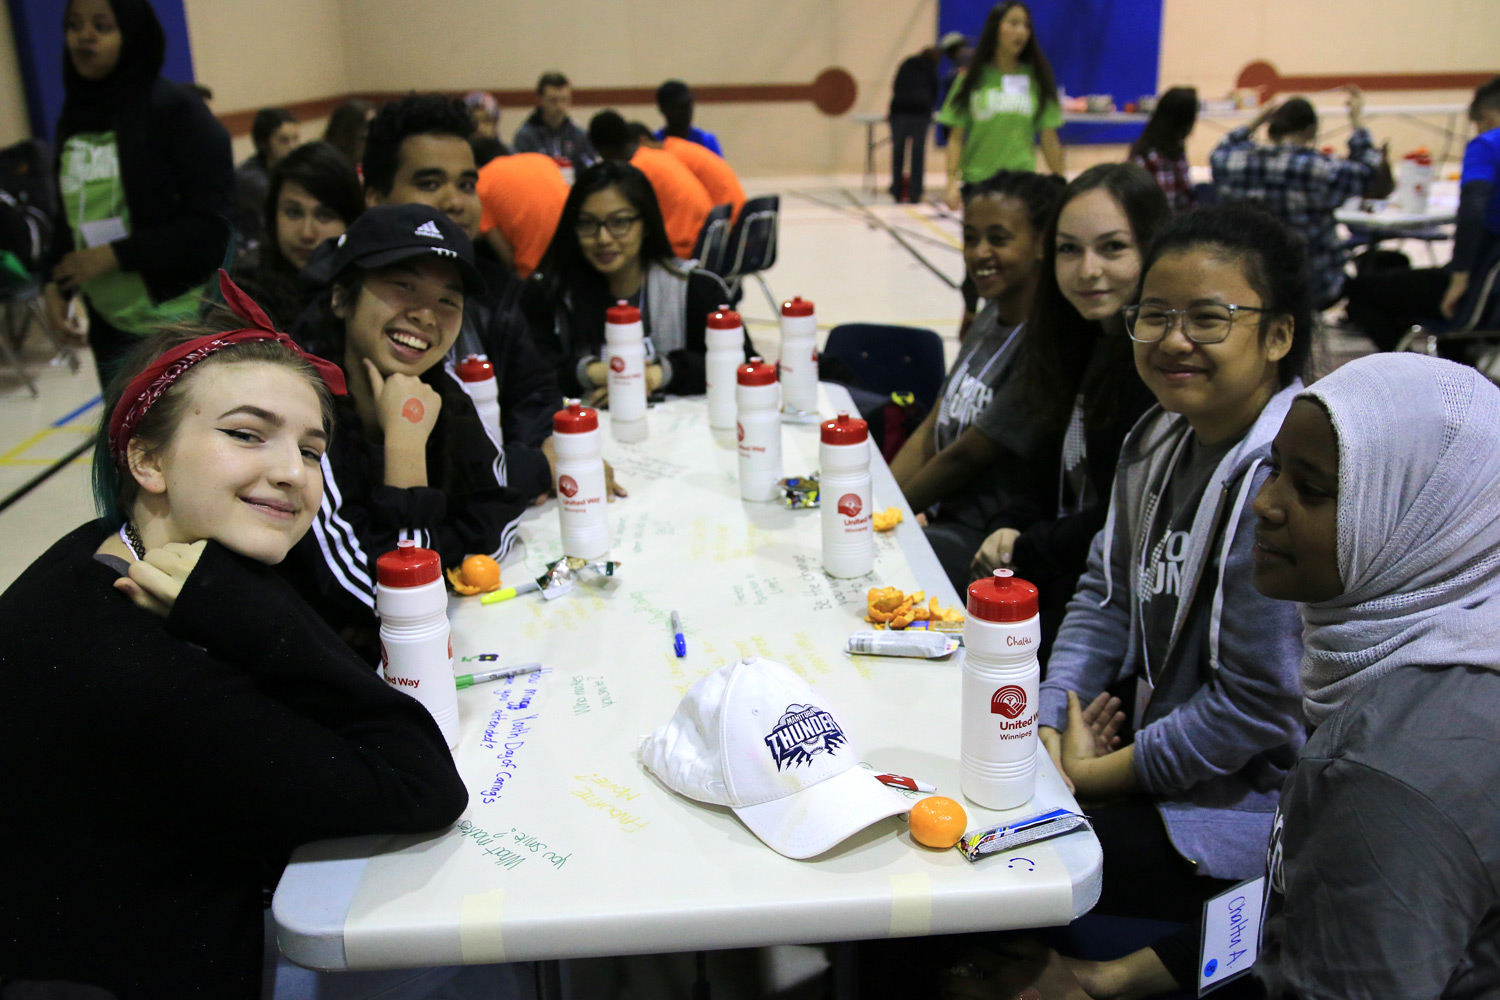 After choosing volunteer projects youth took a little time for ice-breaking and introductions.